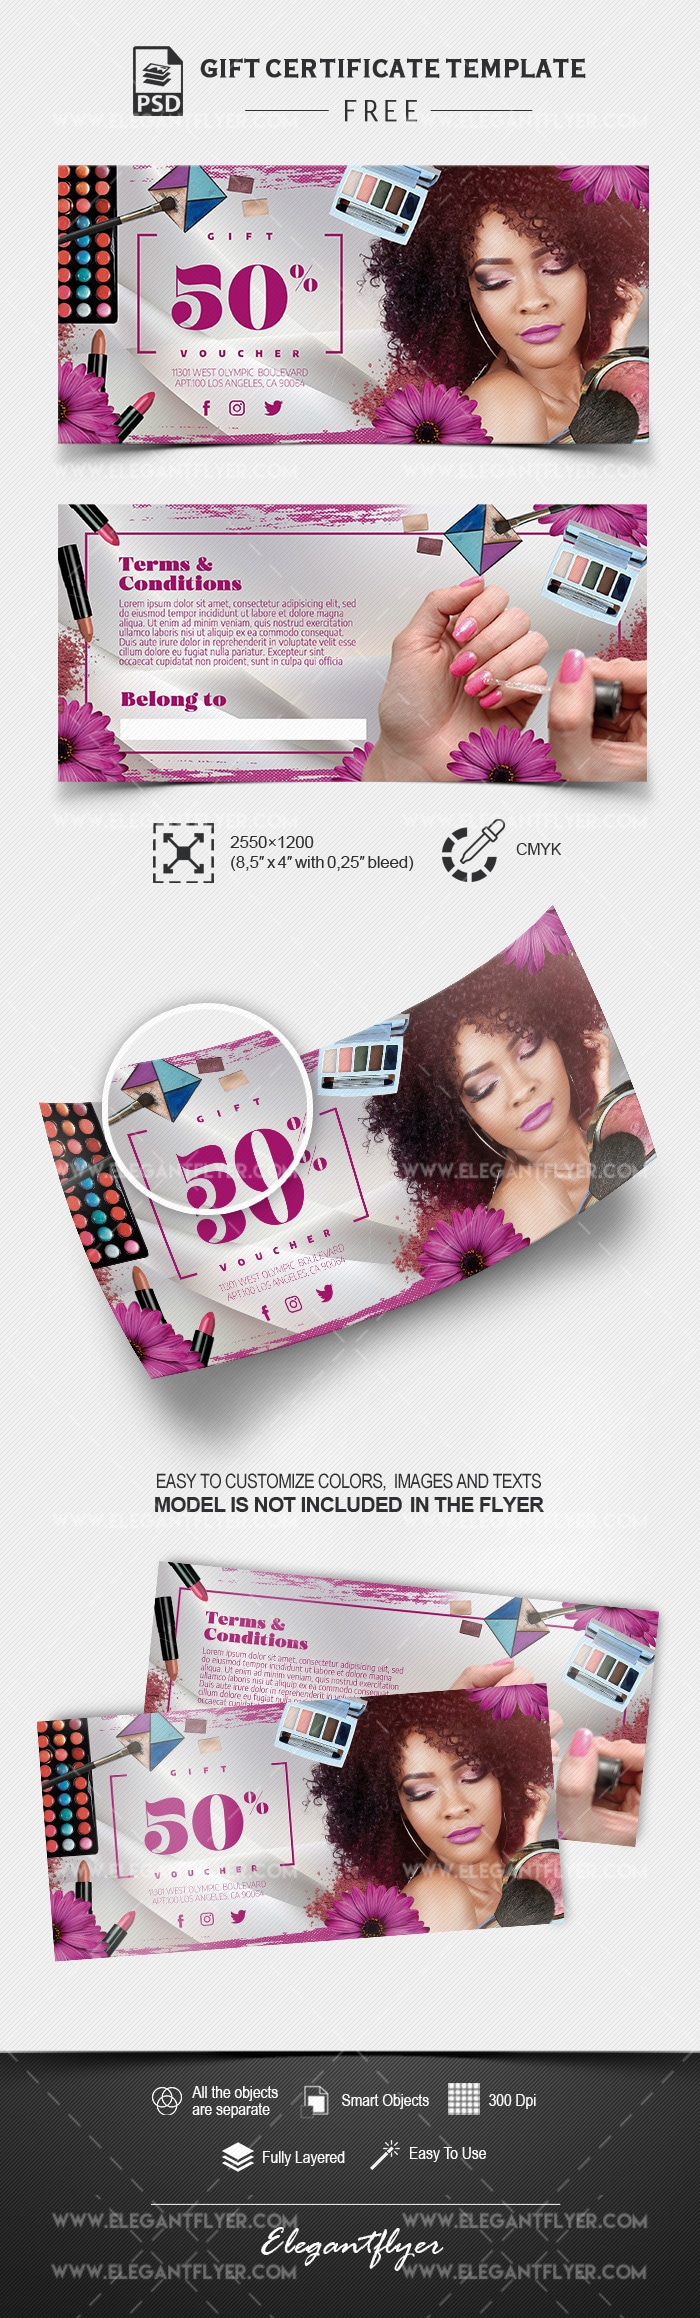 Free Gift Voucher for Cosmetic Shop PSD Mockup